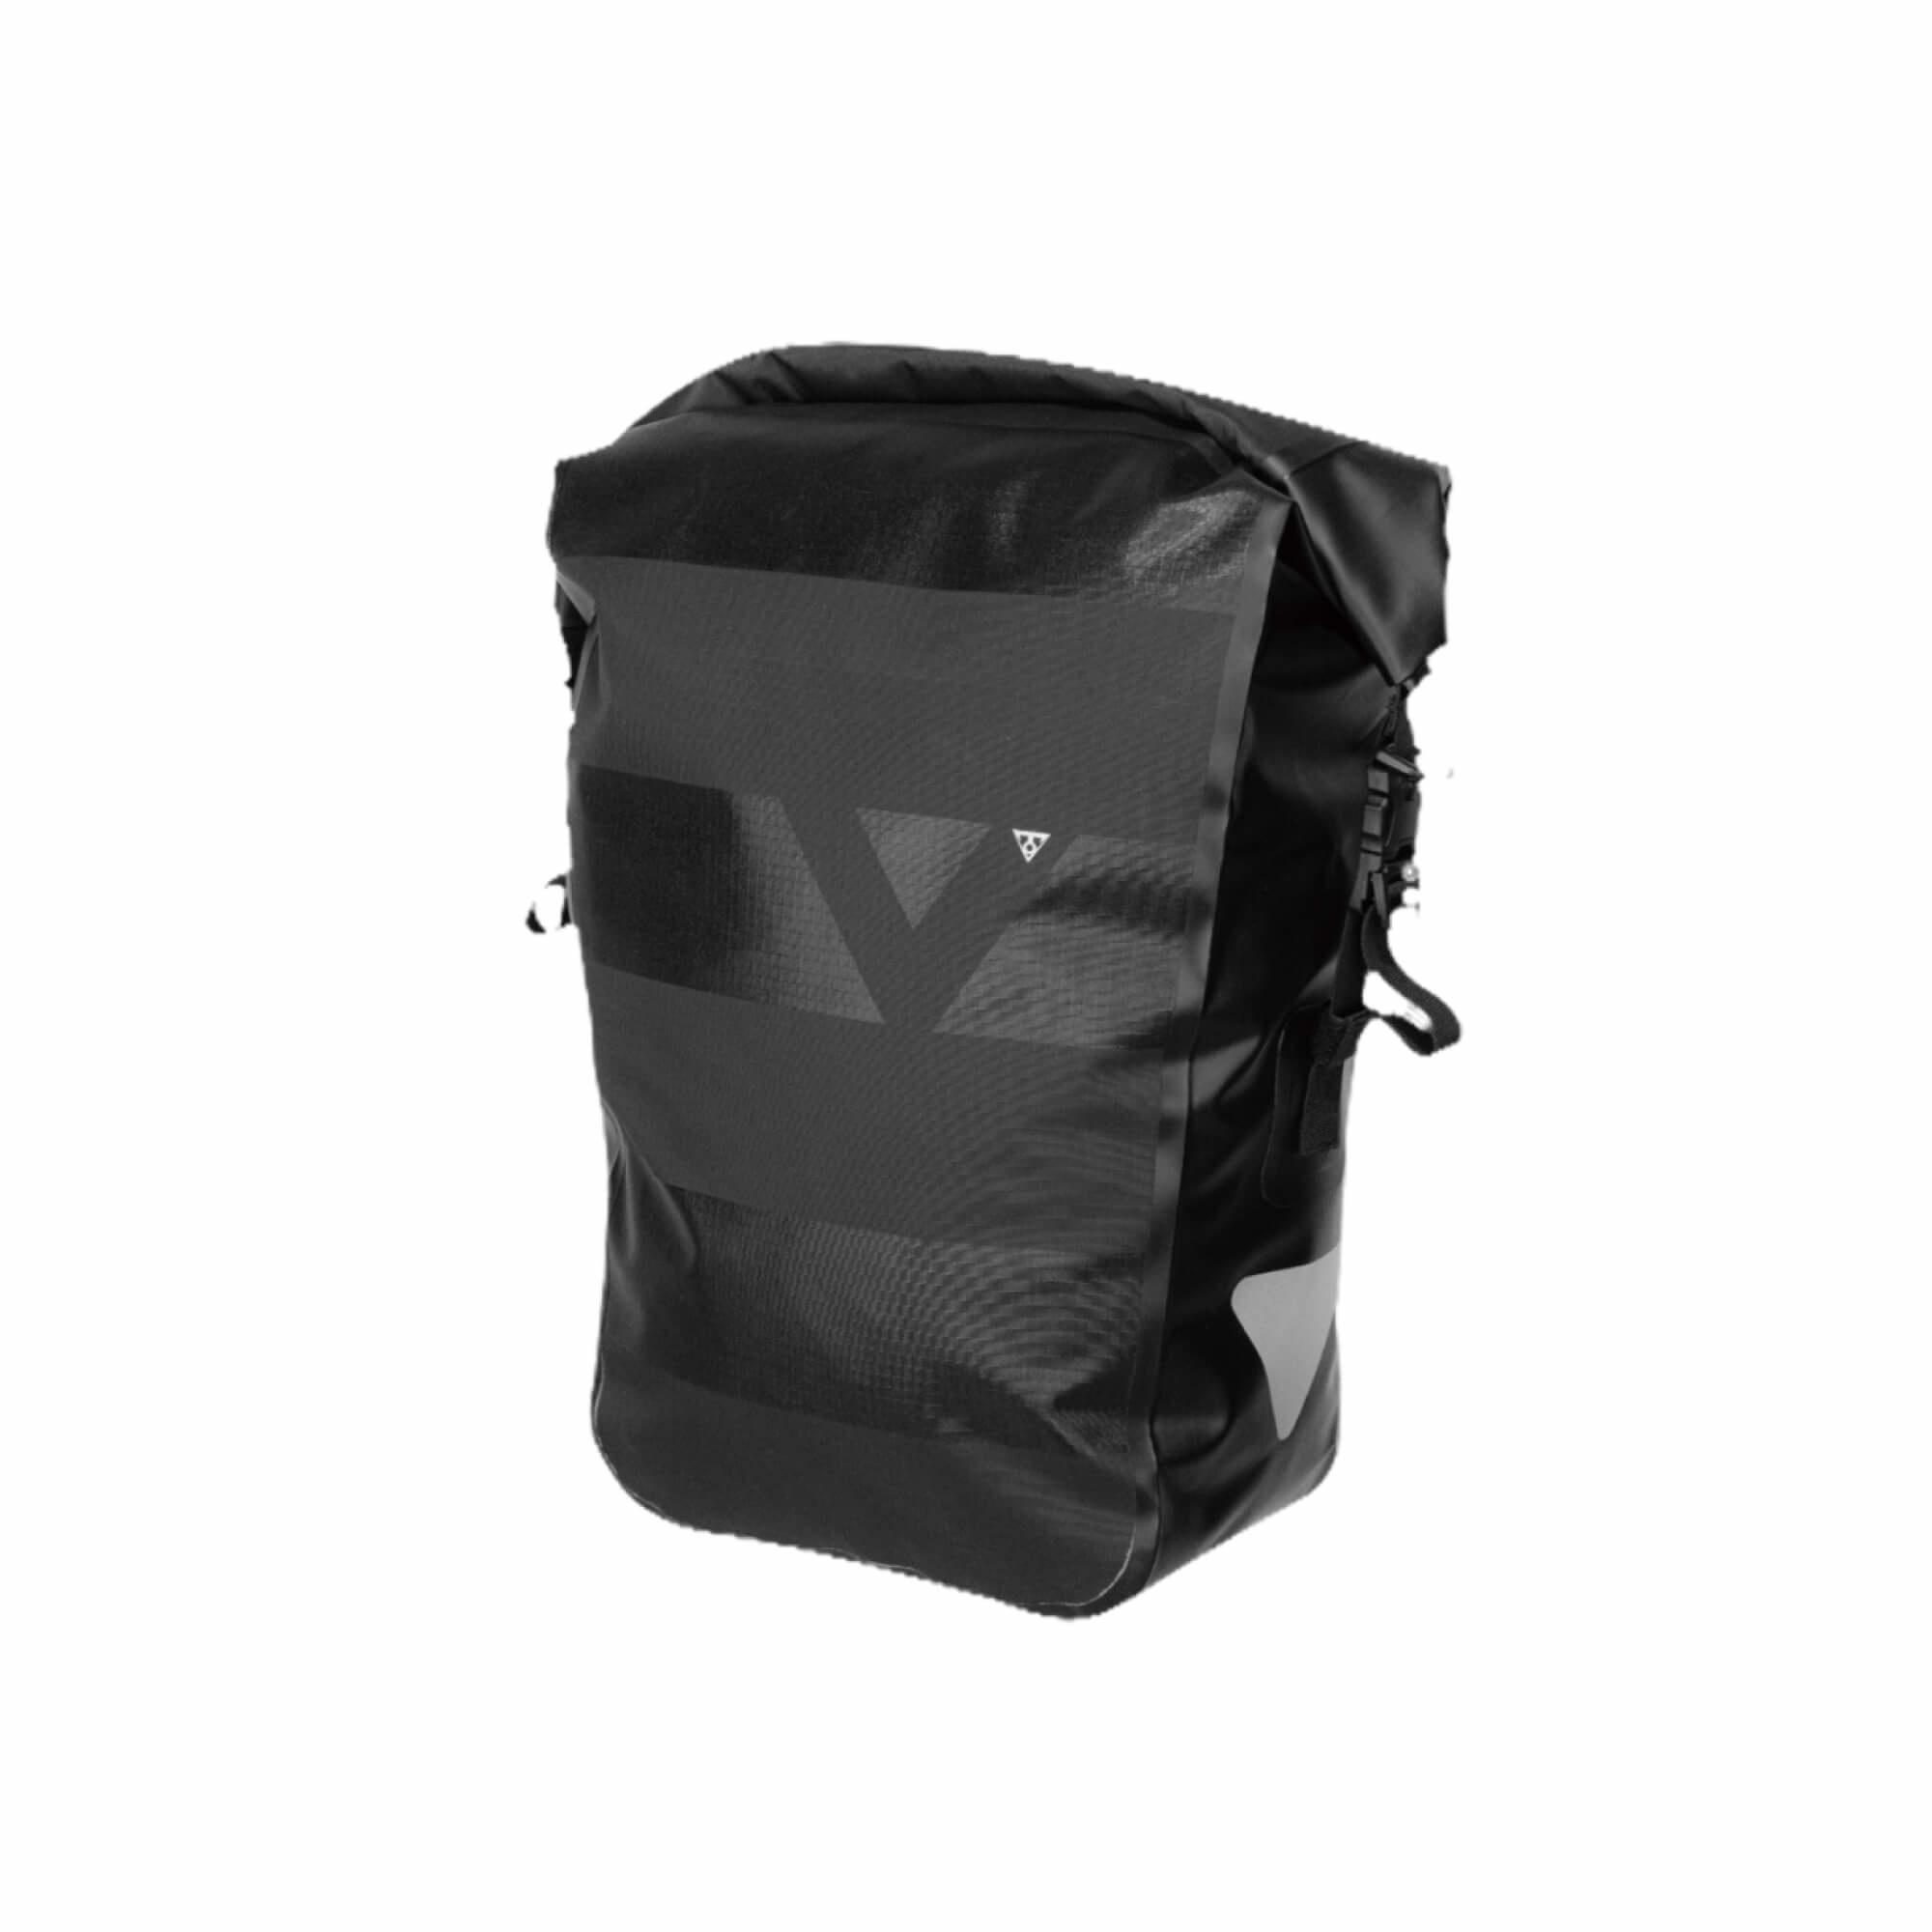 Pannier Drybag 20L One Piece Black-1